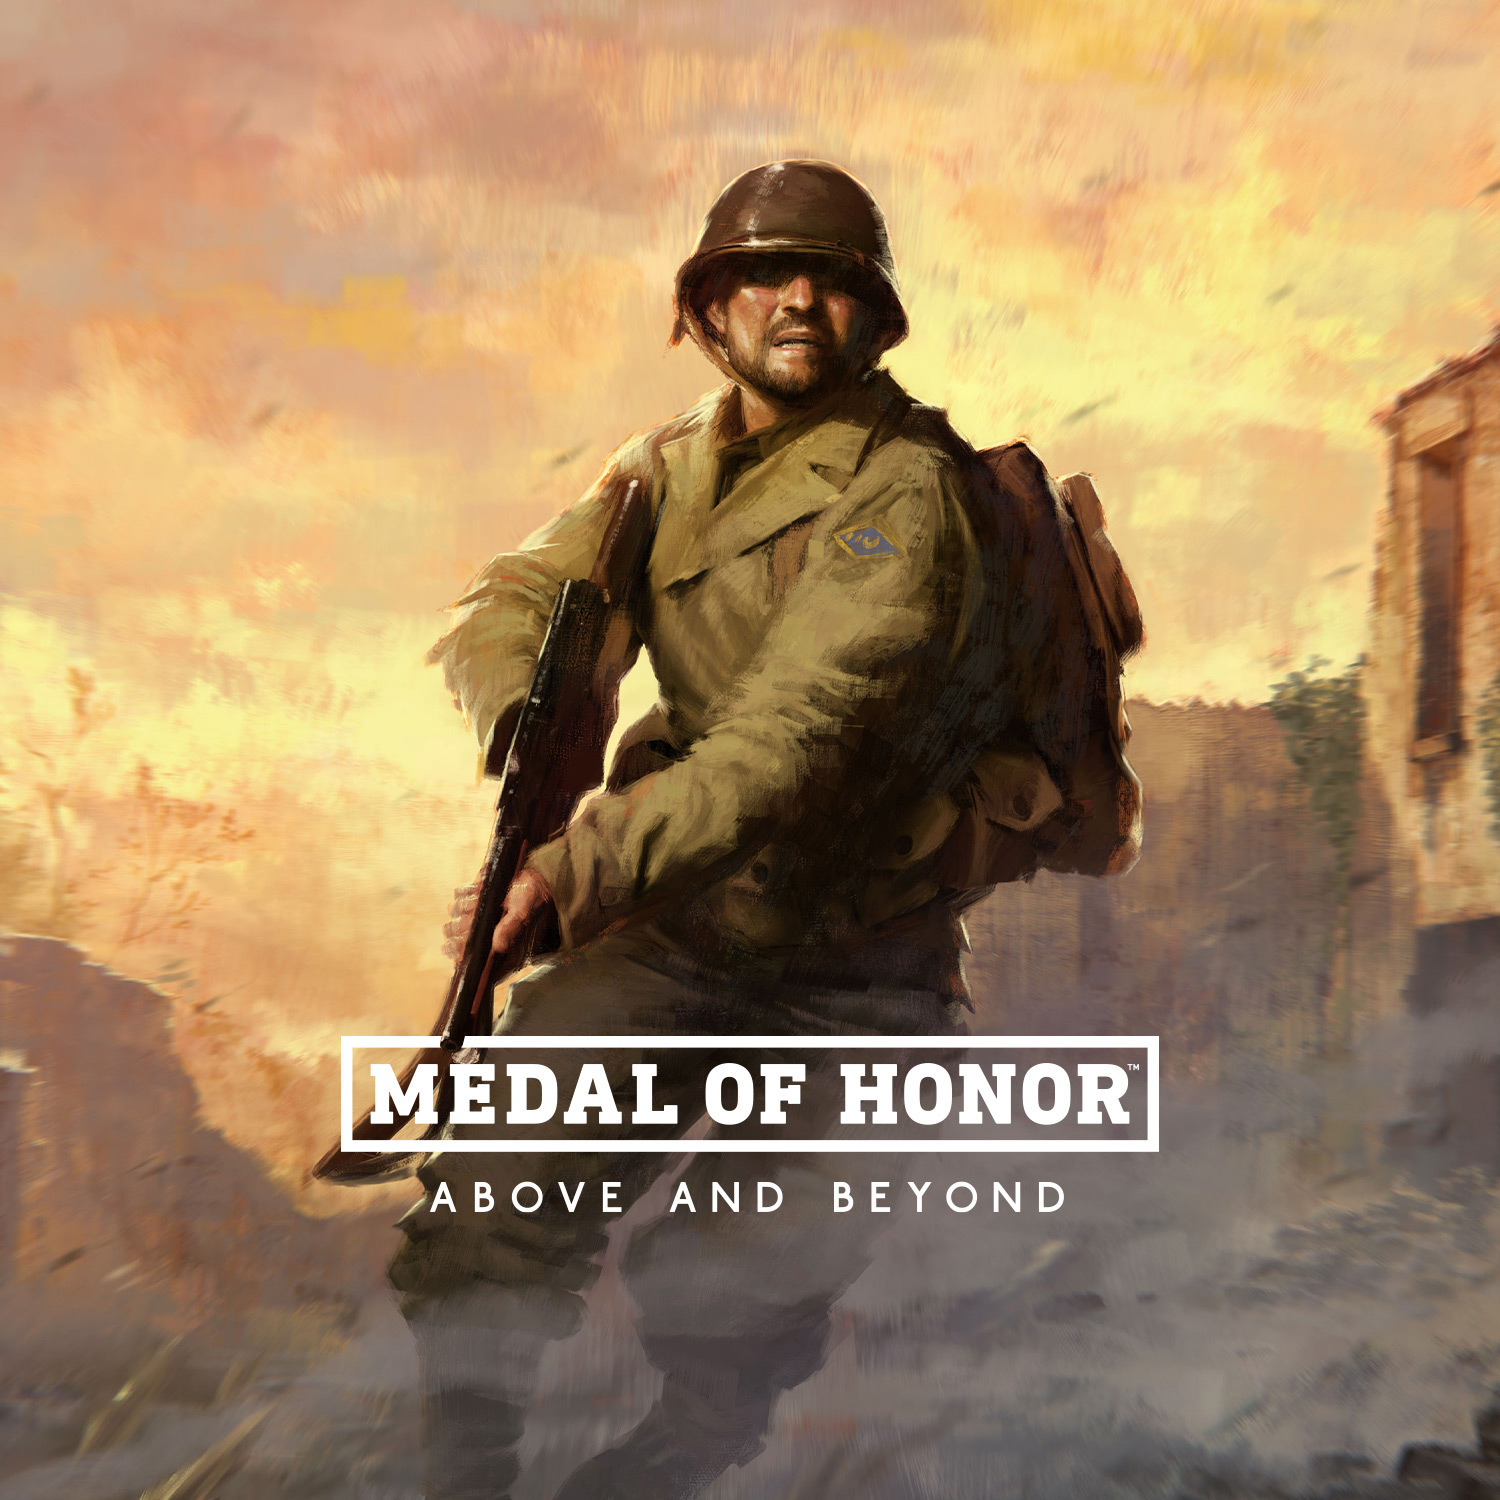 Experience World War II Like Never Before in Immersive VR Today in Medal of Honor: Above and Beyond